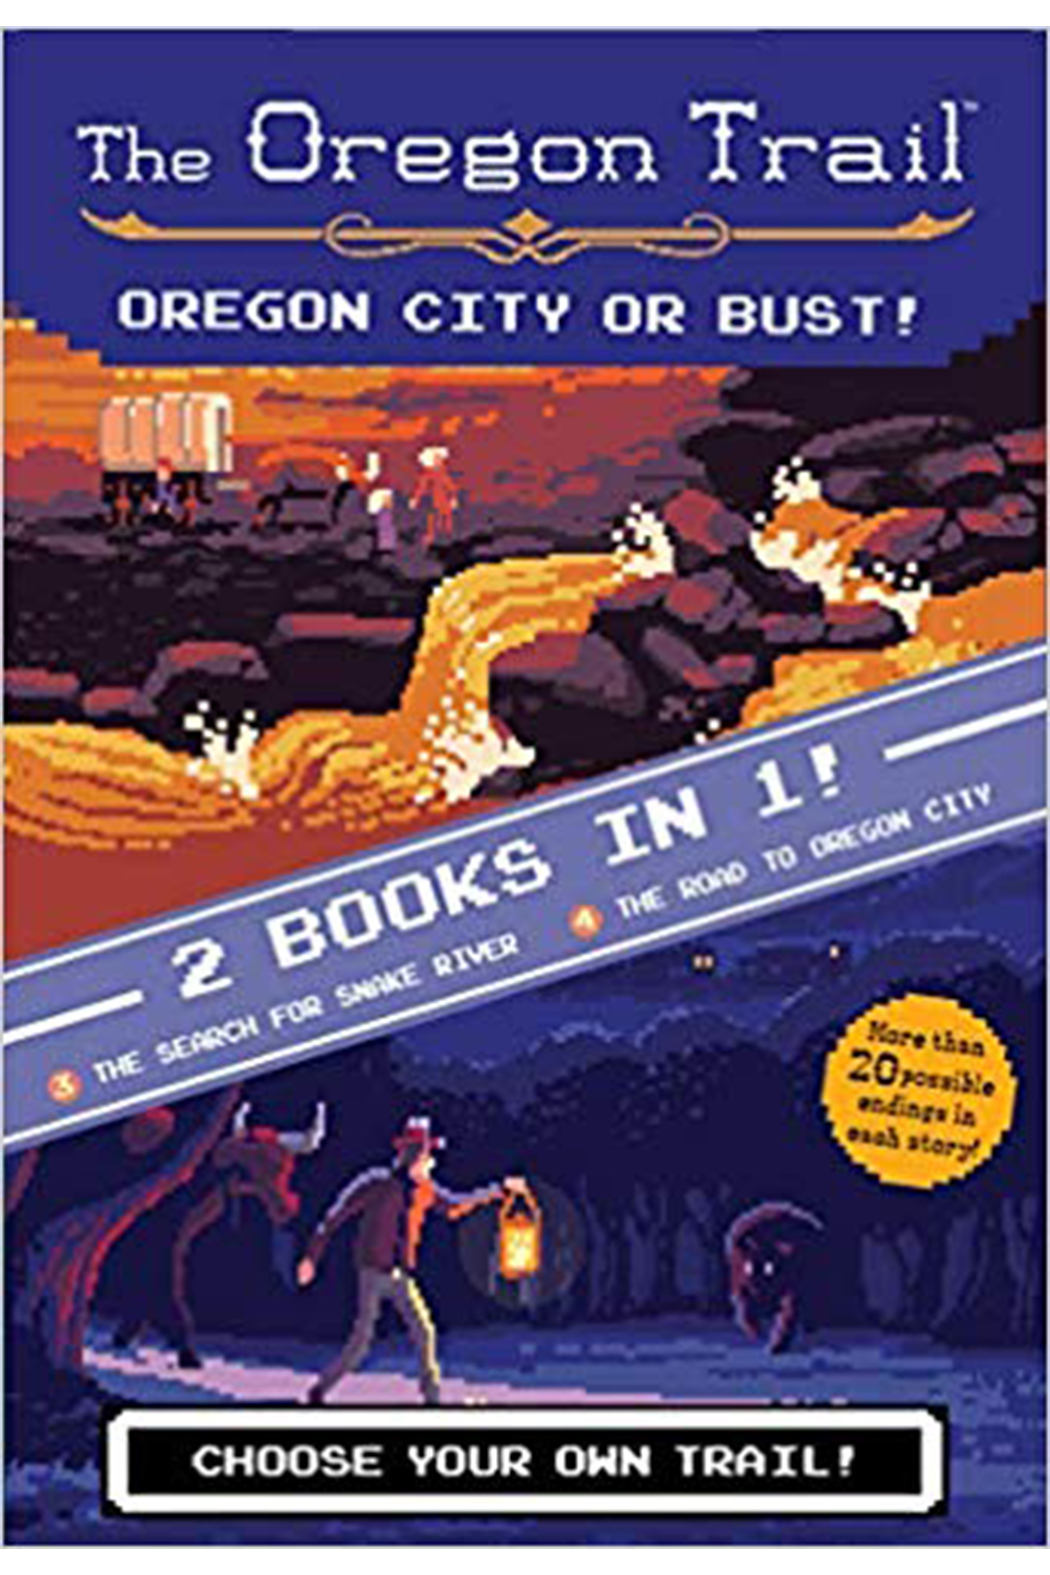 Houghton Mifflin Harcourt  The Oregon Trail Oregon City Or Bust! - Main Image